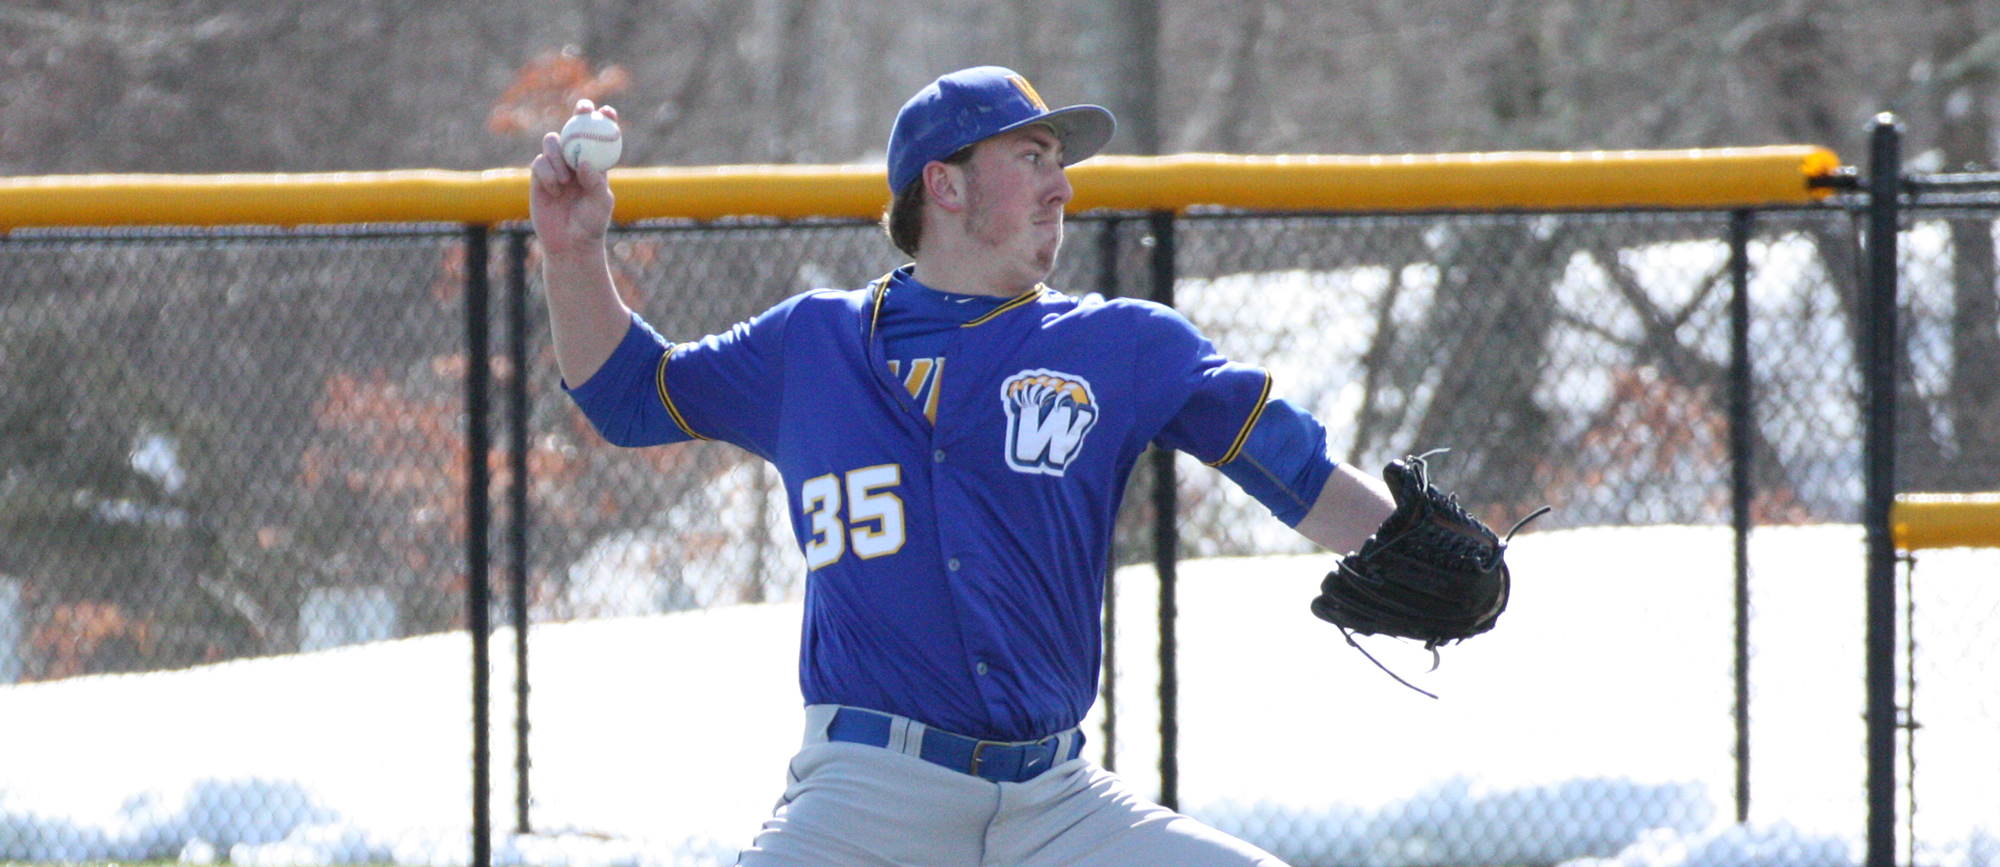 Senior right-hander Jake Kawiecki matched his career-high with eight strikeouts in Western New England's 5-3 victory over St. Olaf on Saturday.